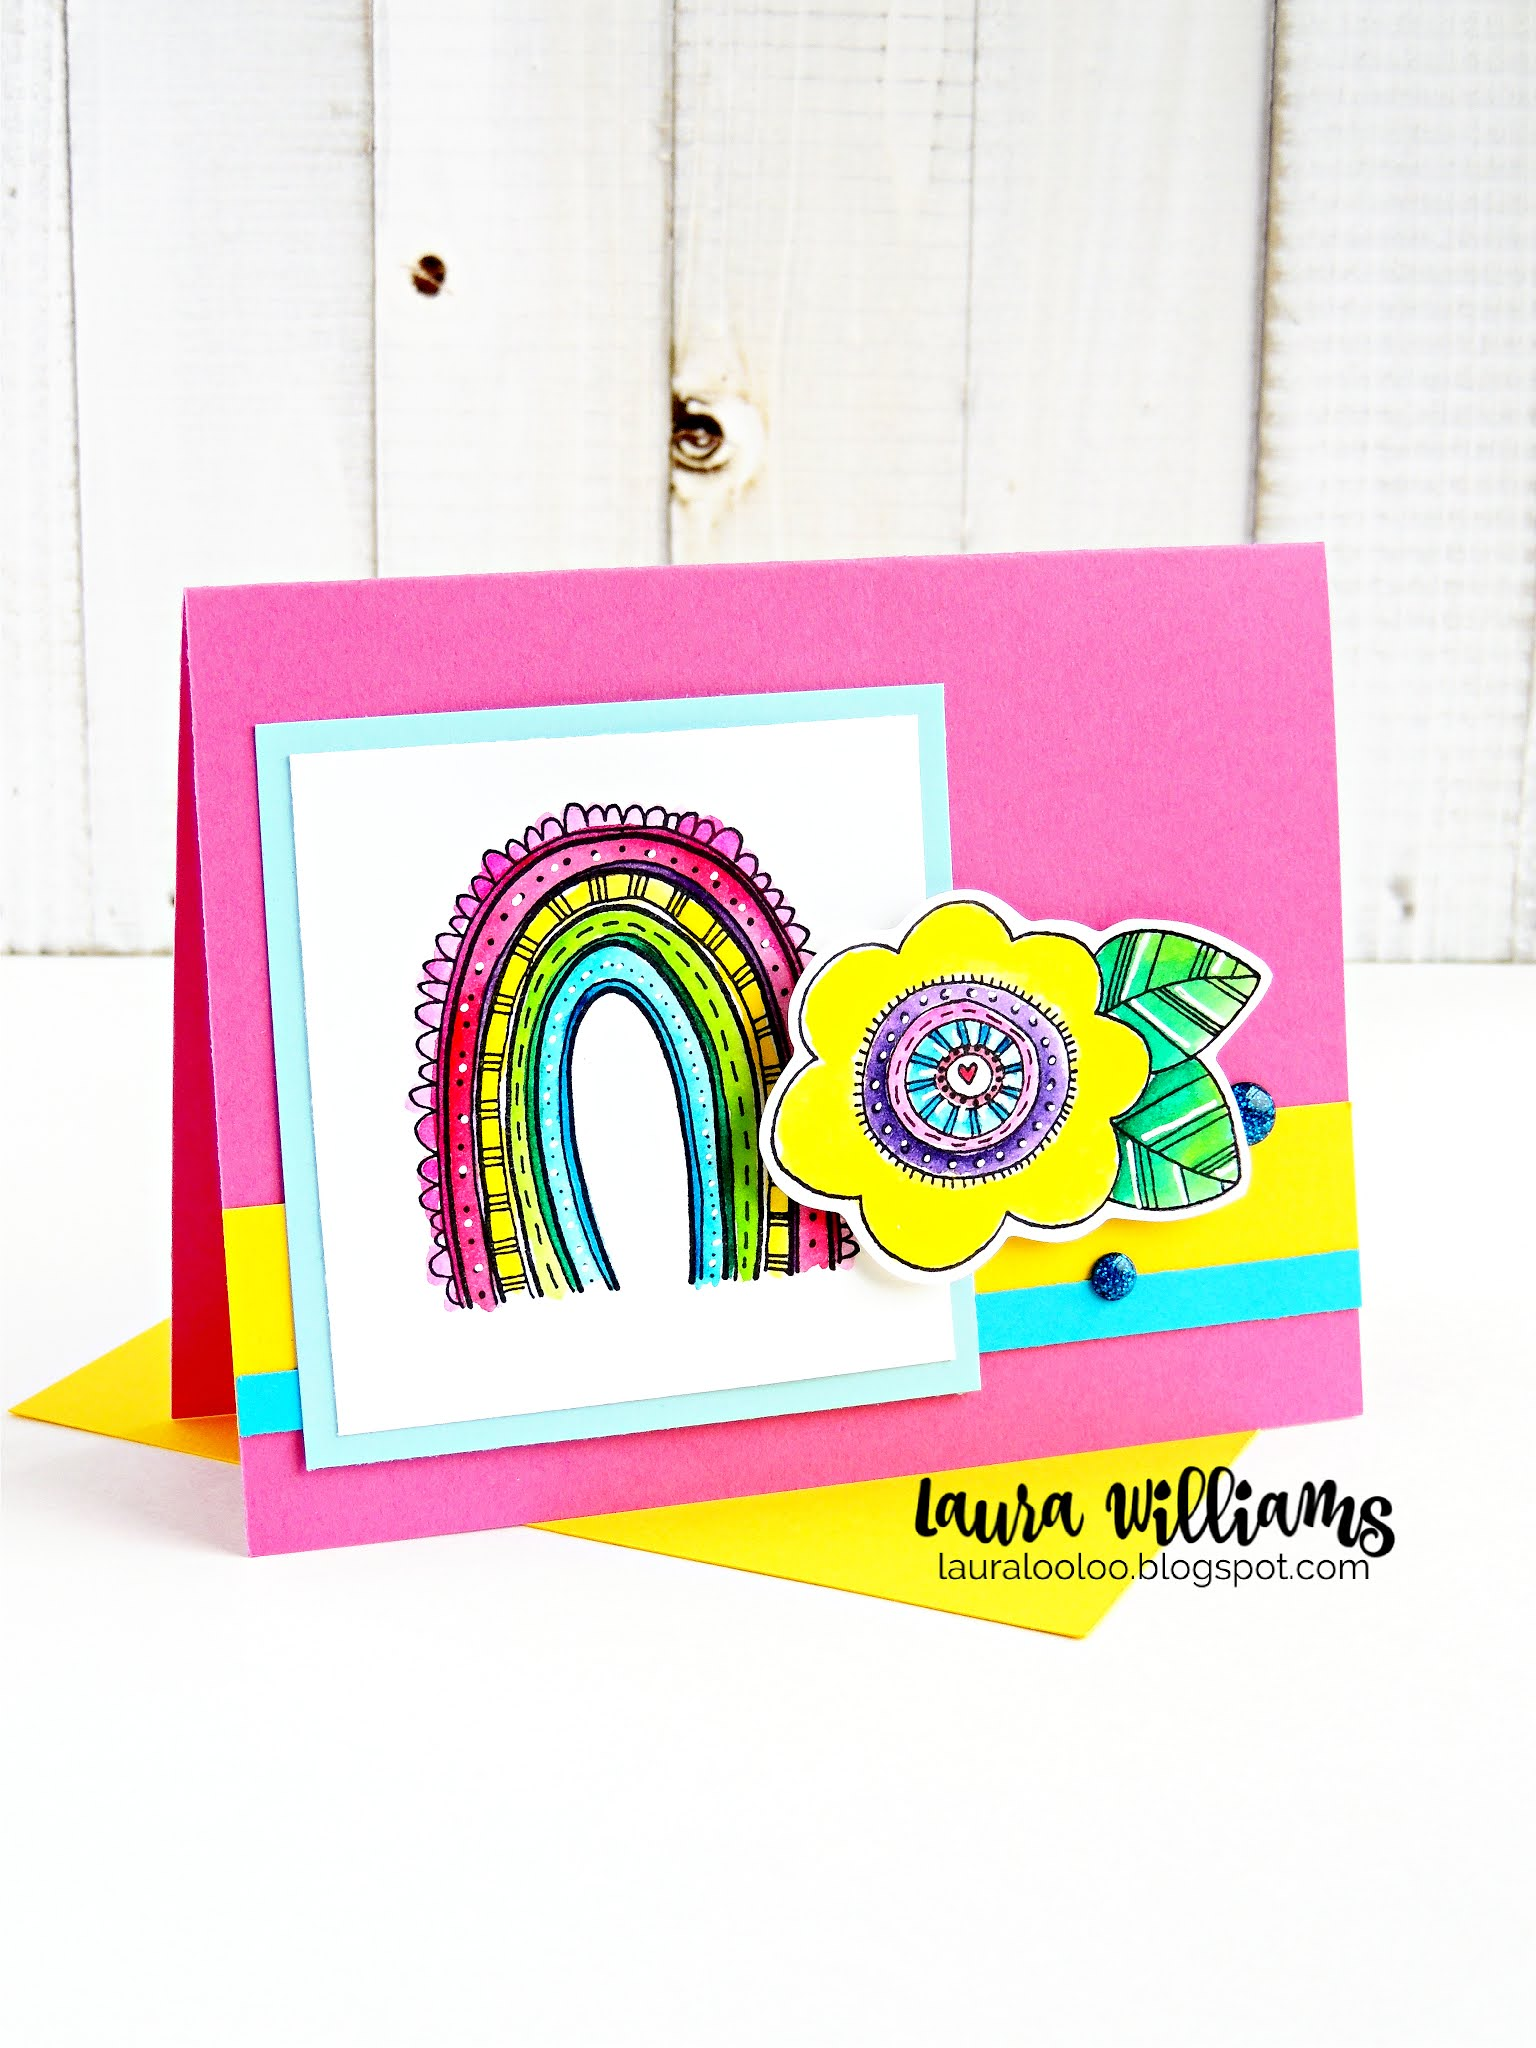 Make a bright and cheery handmade card using a rainbow stamp and flower stamp from Impression Obsession. The Rainbow Scallops and Rainbow Flower stamps from IO are perfect for cheerful cardmaking projects, scrapbook, and paper crafts. Visit my blog to see more ideas with these sweet stamps.